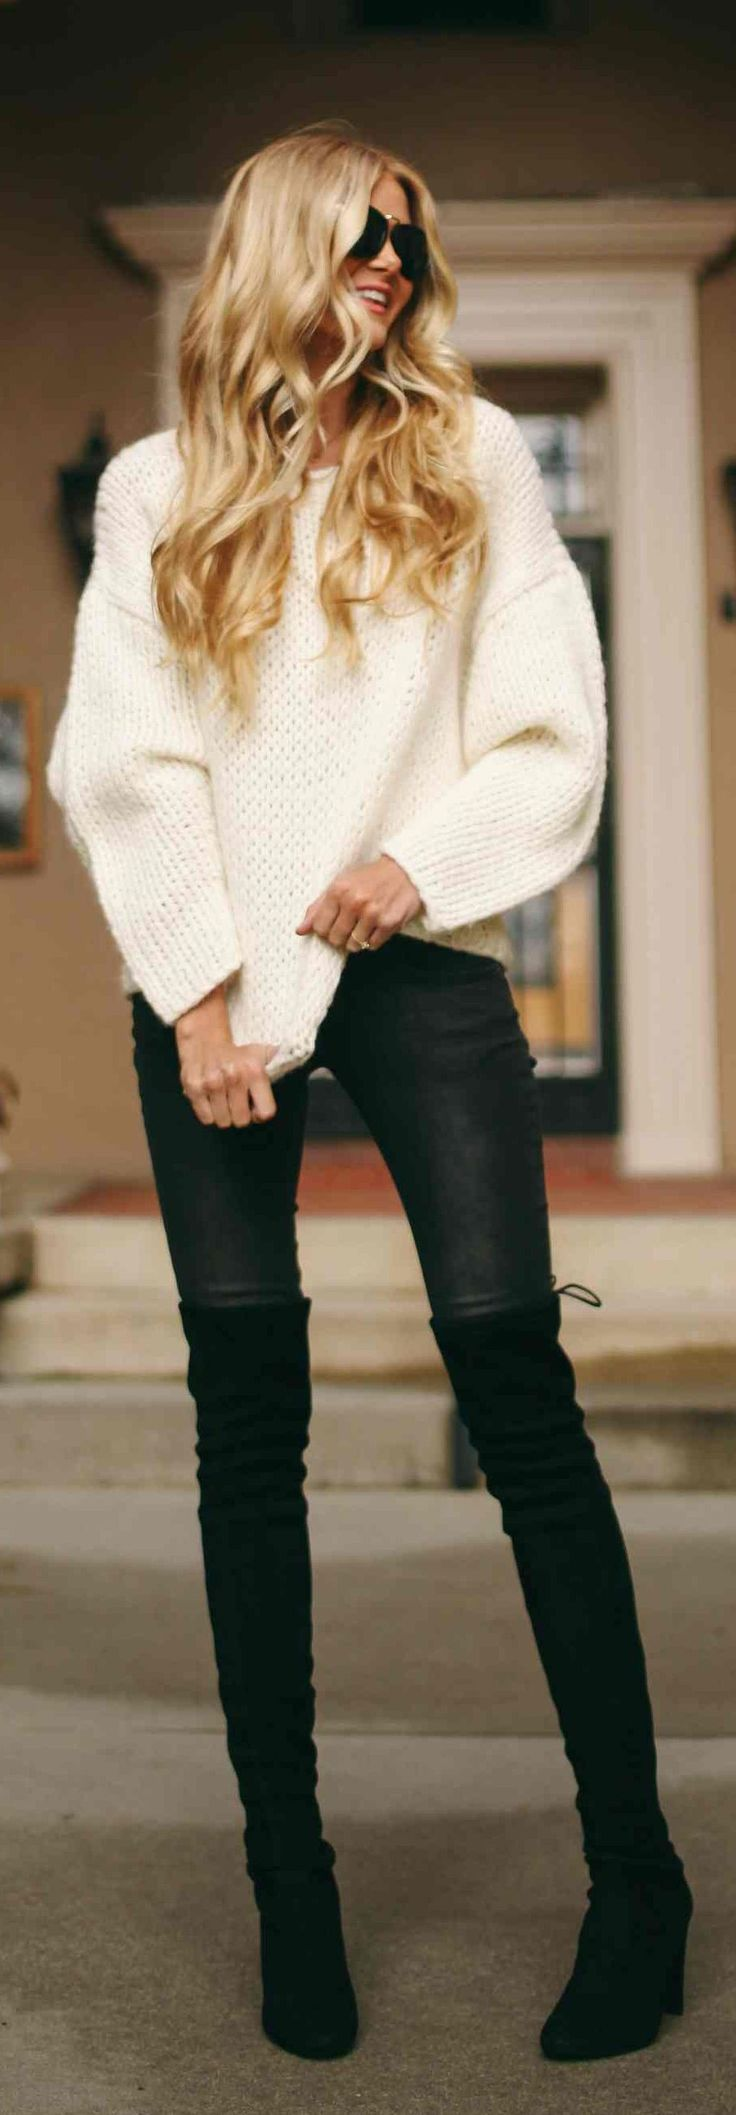 over the knee boots + skinny jeans + loose sweater. always thinking about fall <3